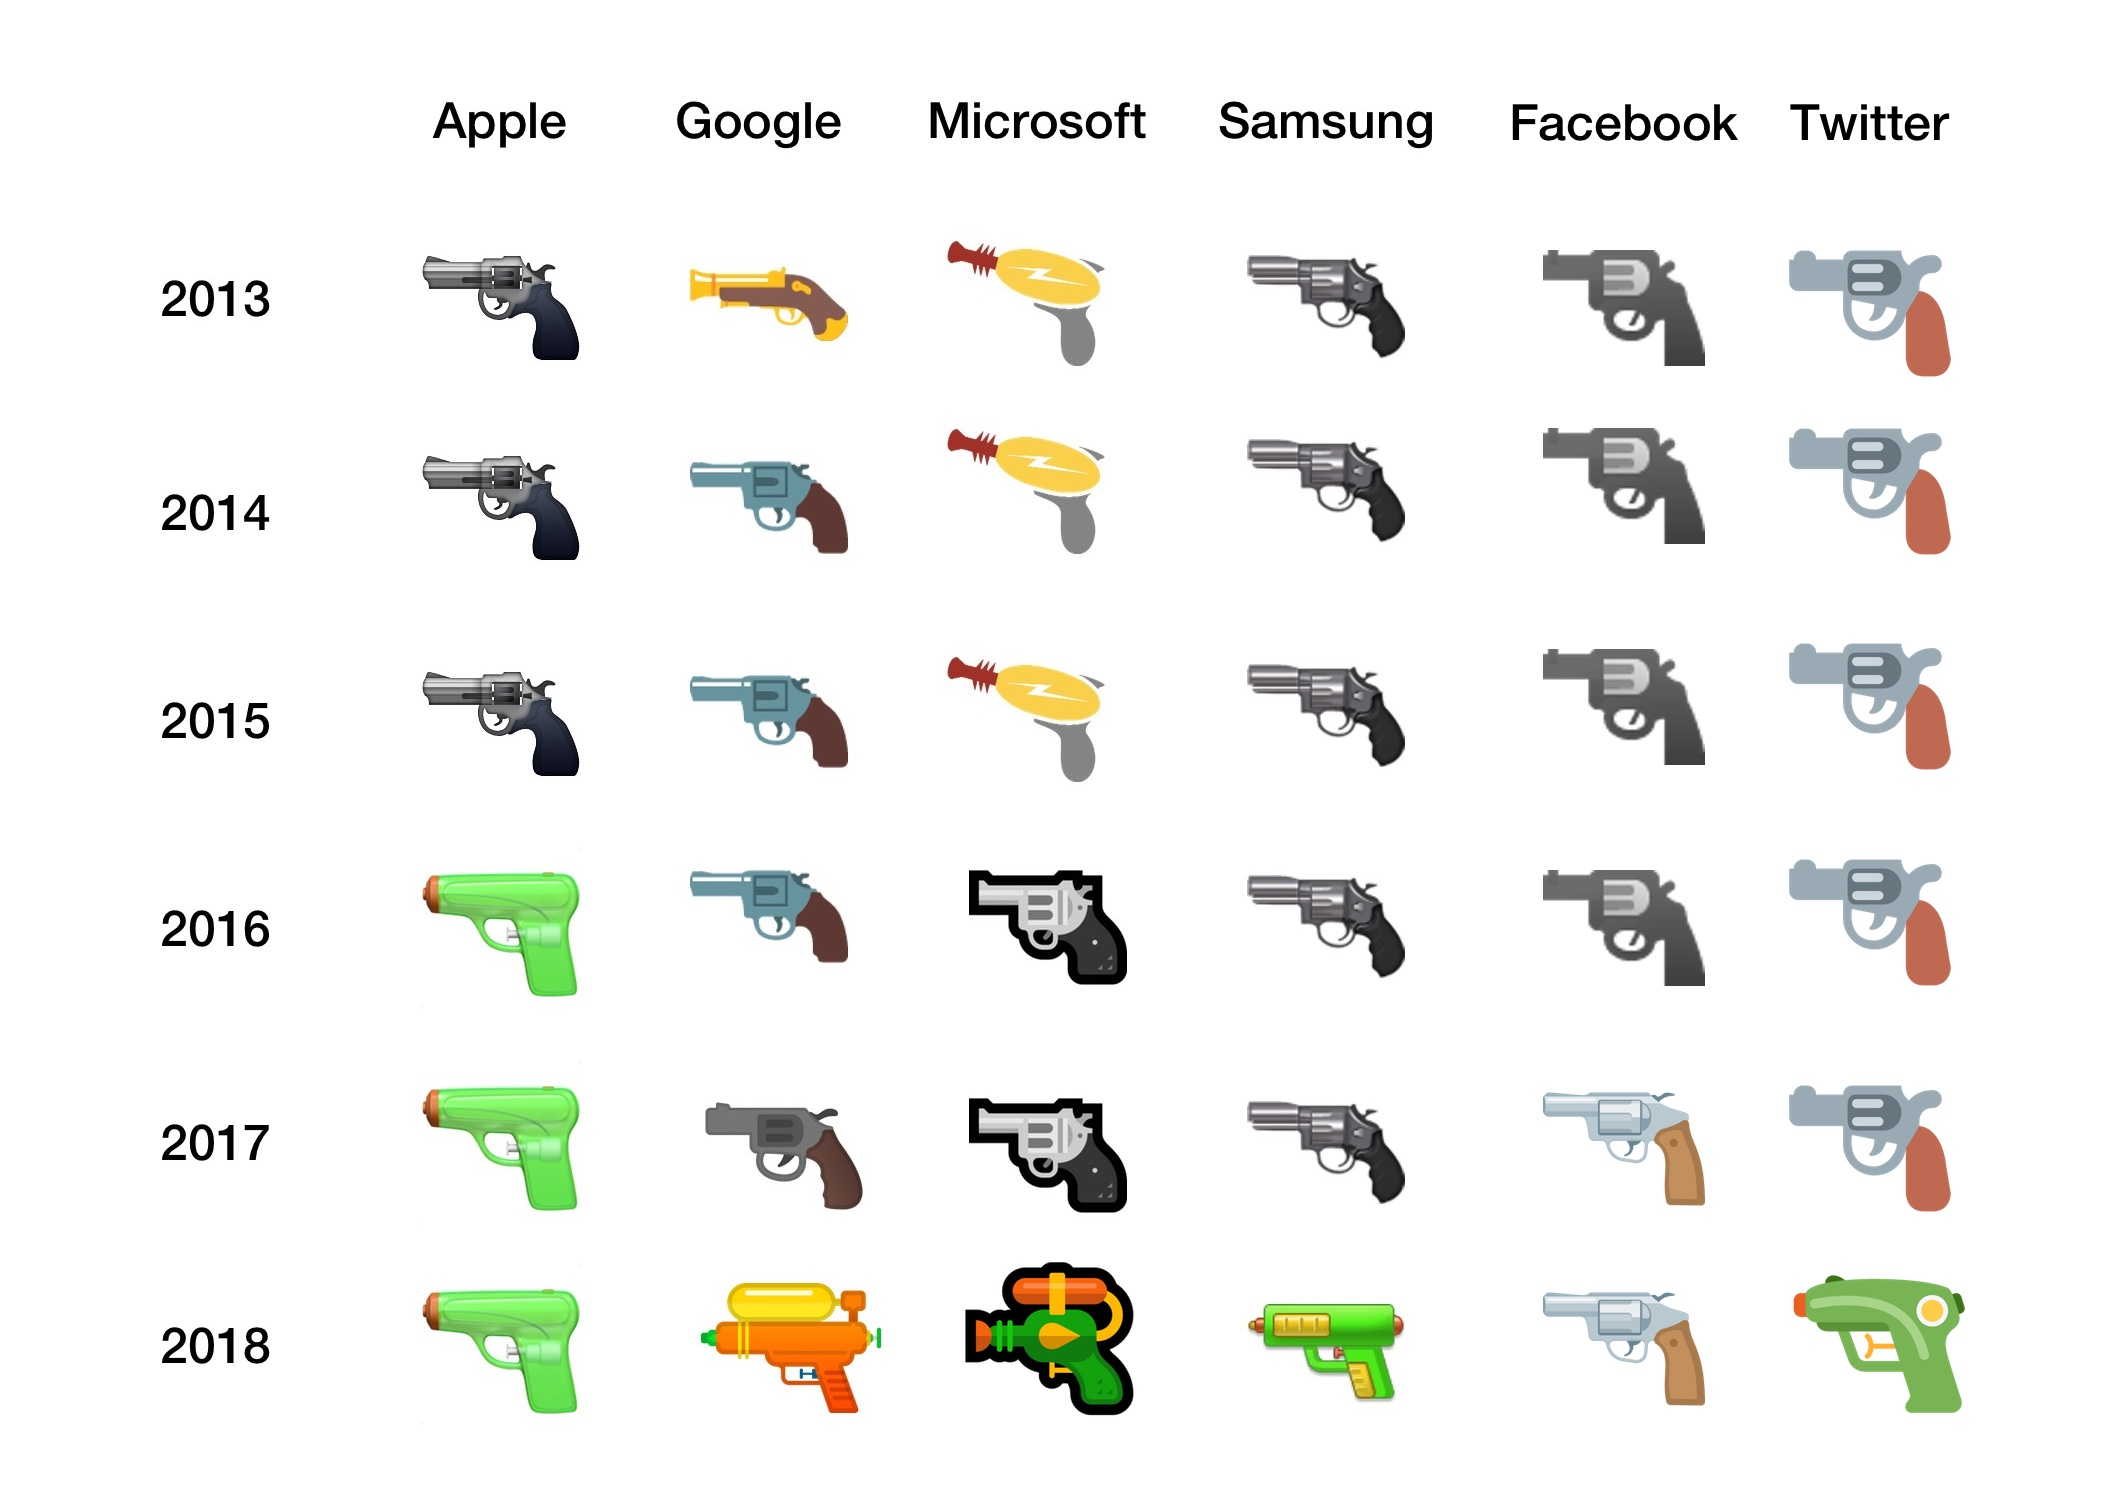 pistol-emoji-comparison-image-emojipedia-2018-update-1